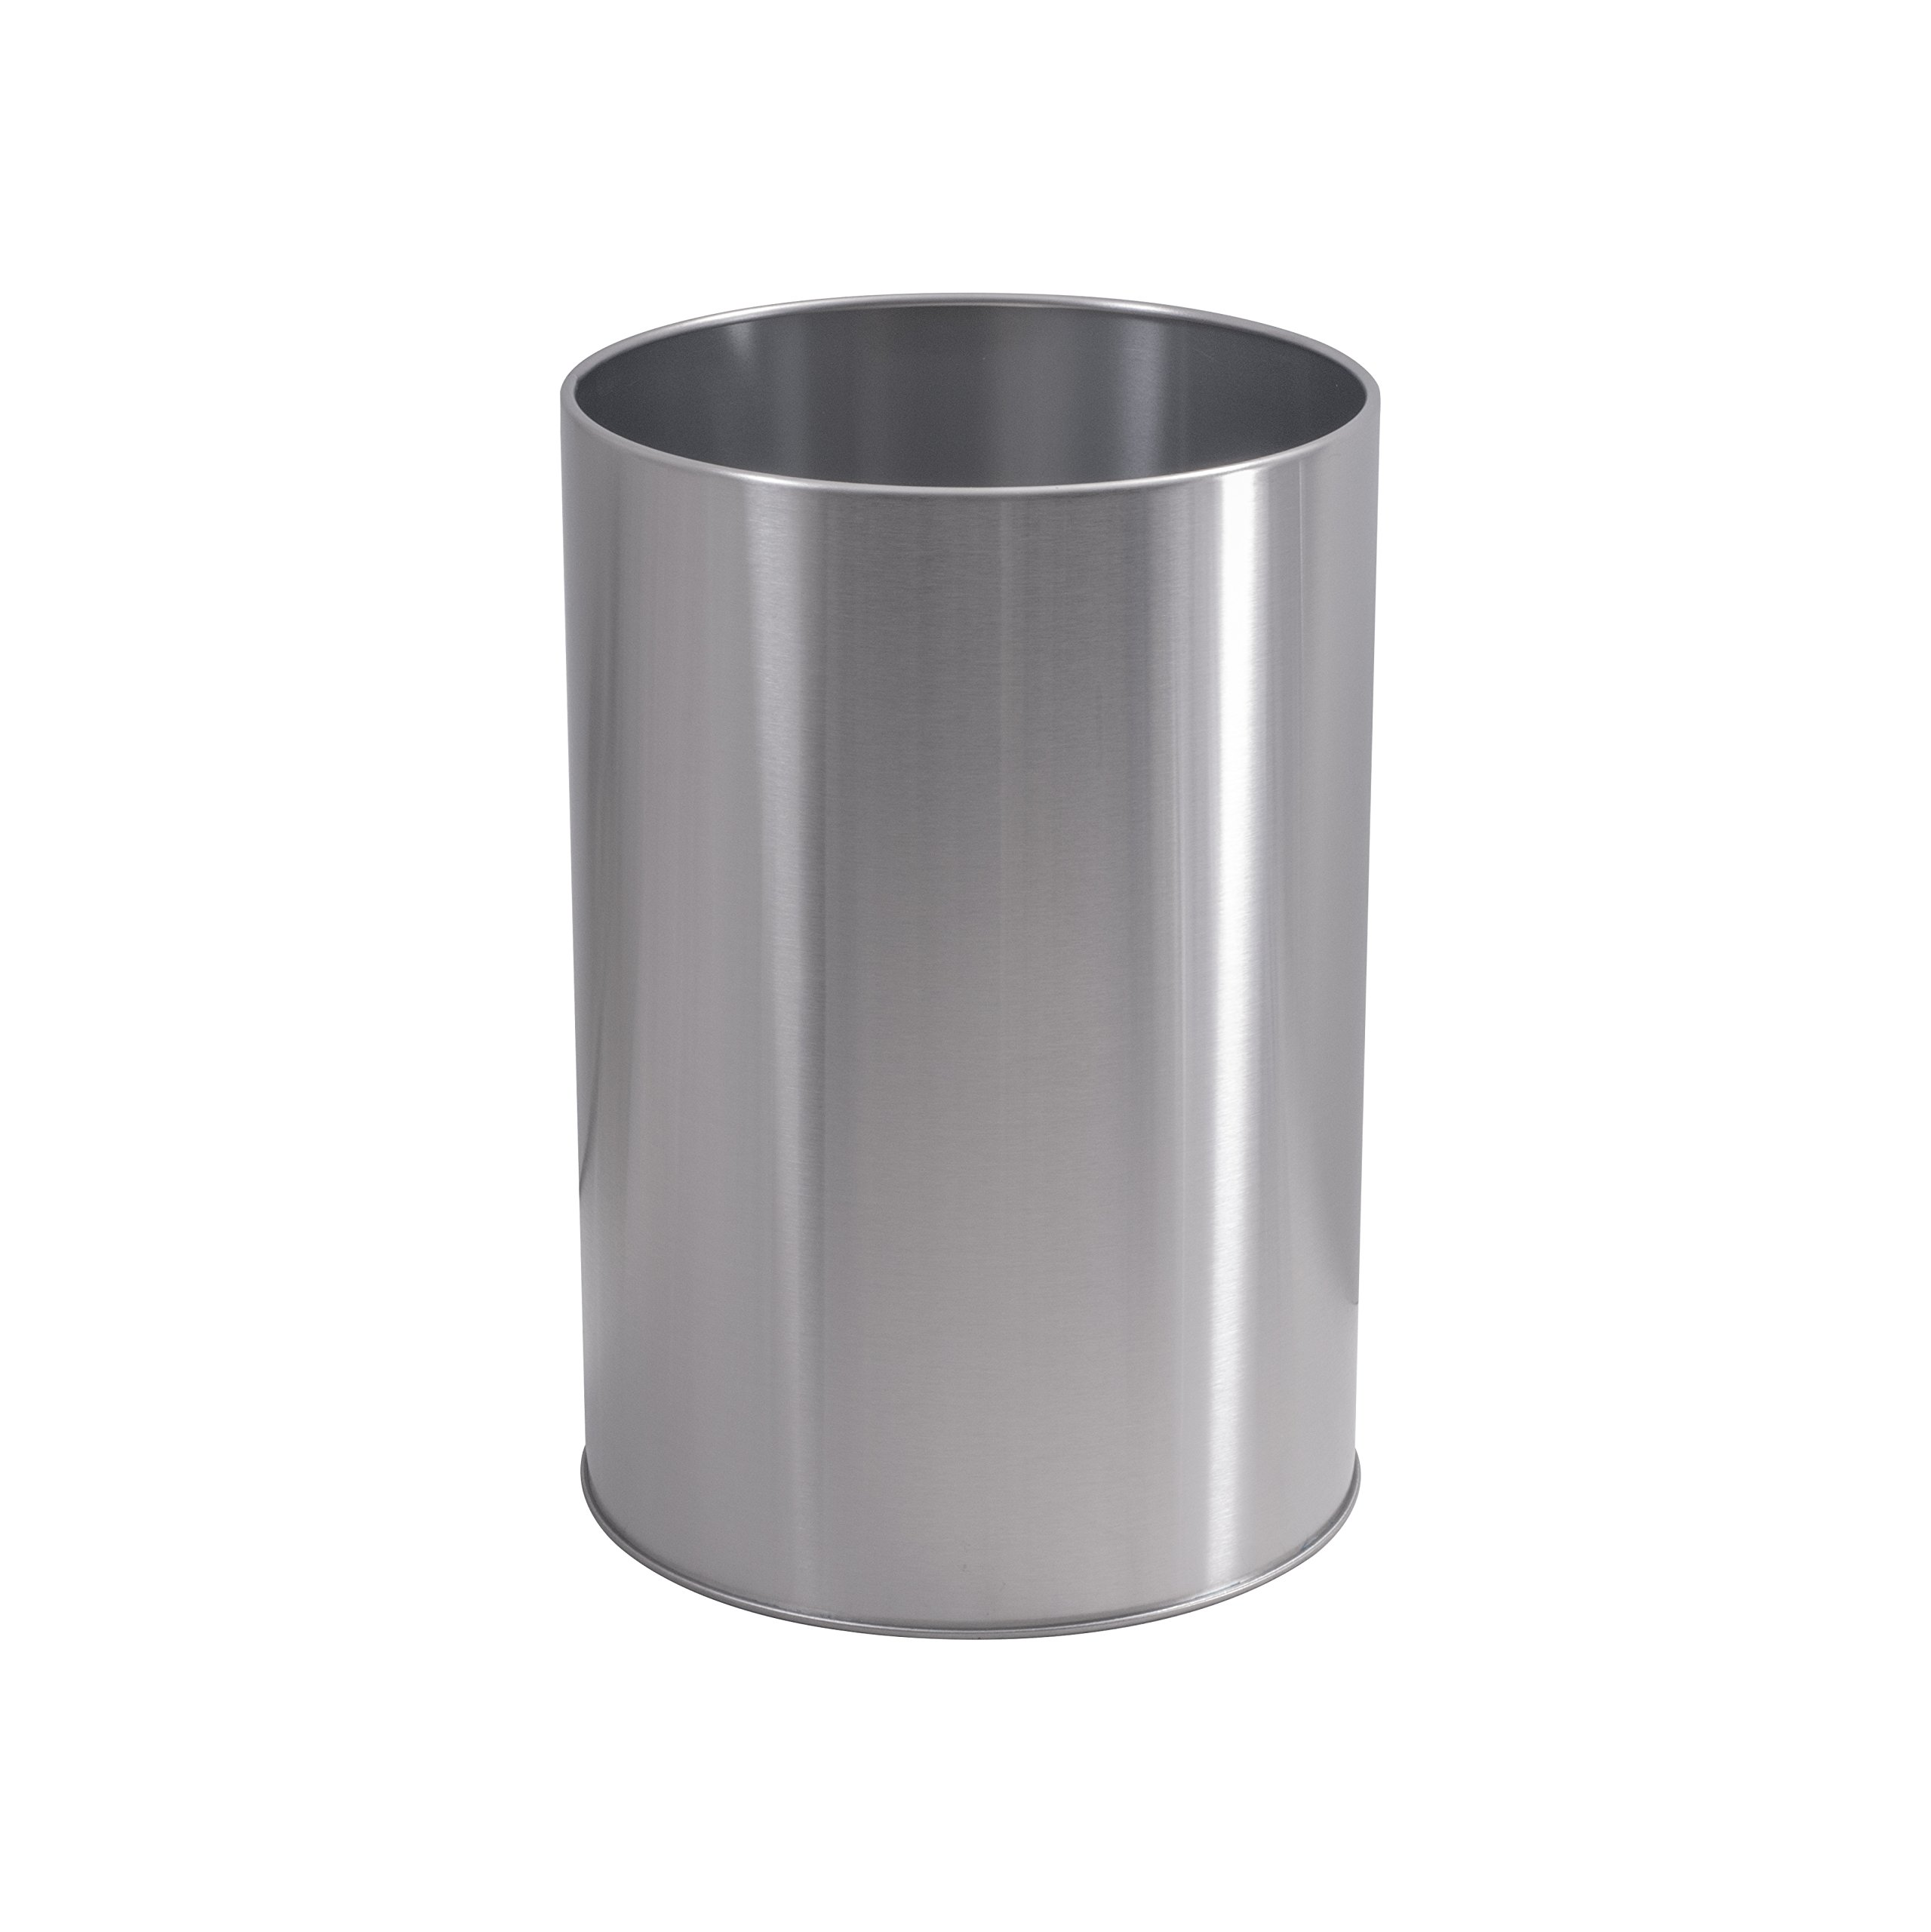 LDR 164 6400BN Ashton Waste Basket, Brushed Nickel